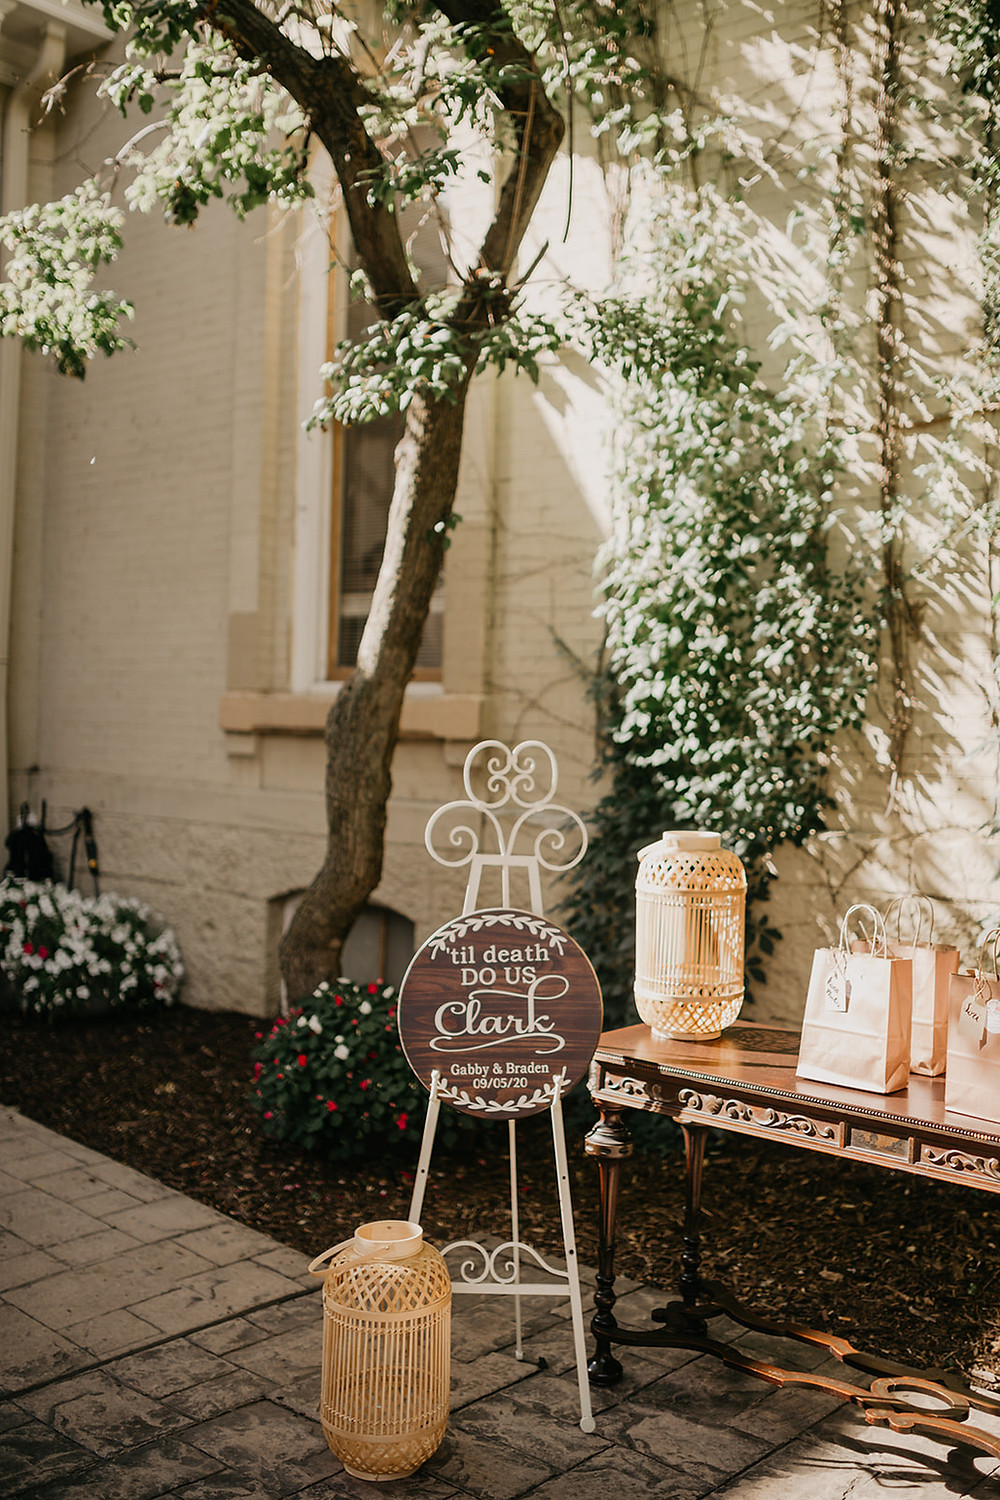 Wicker lantern decor and signage welcome guests to intimate wedding